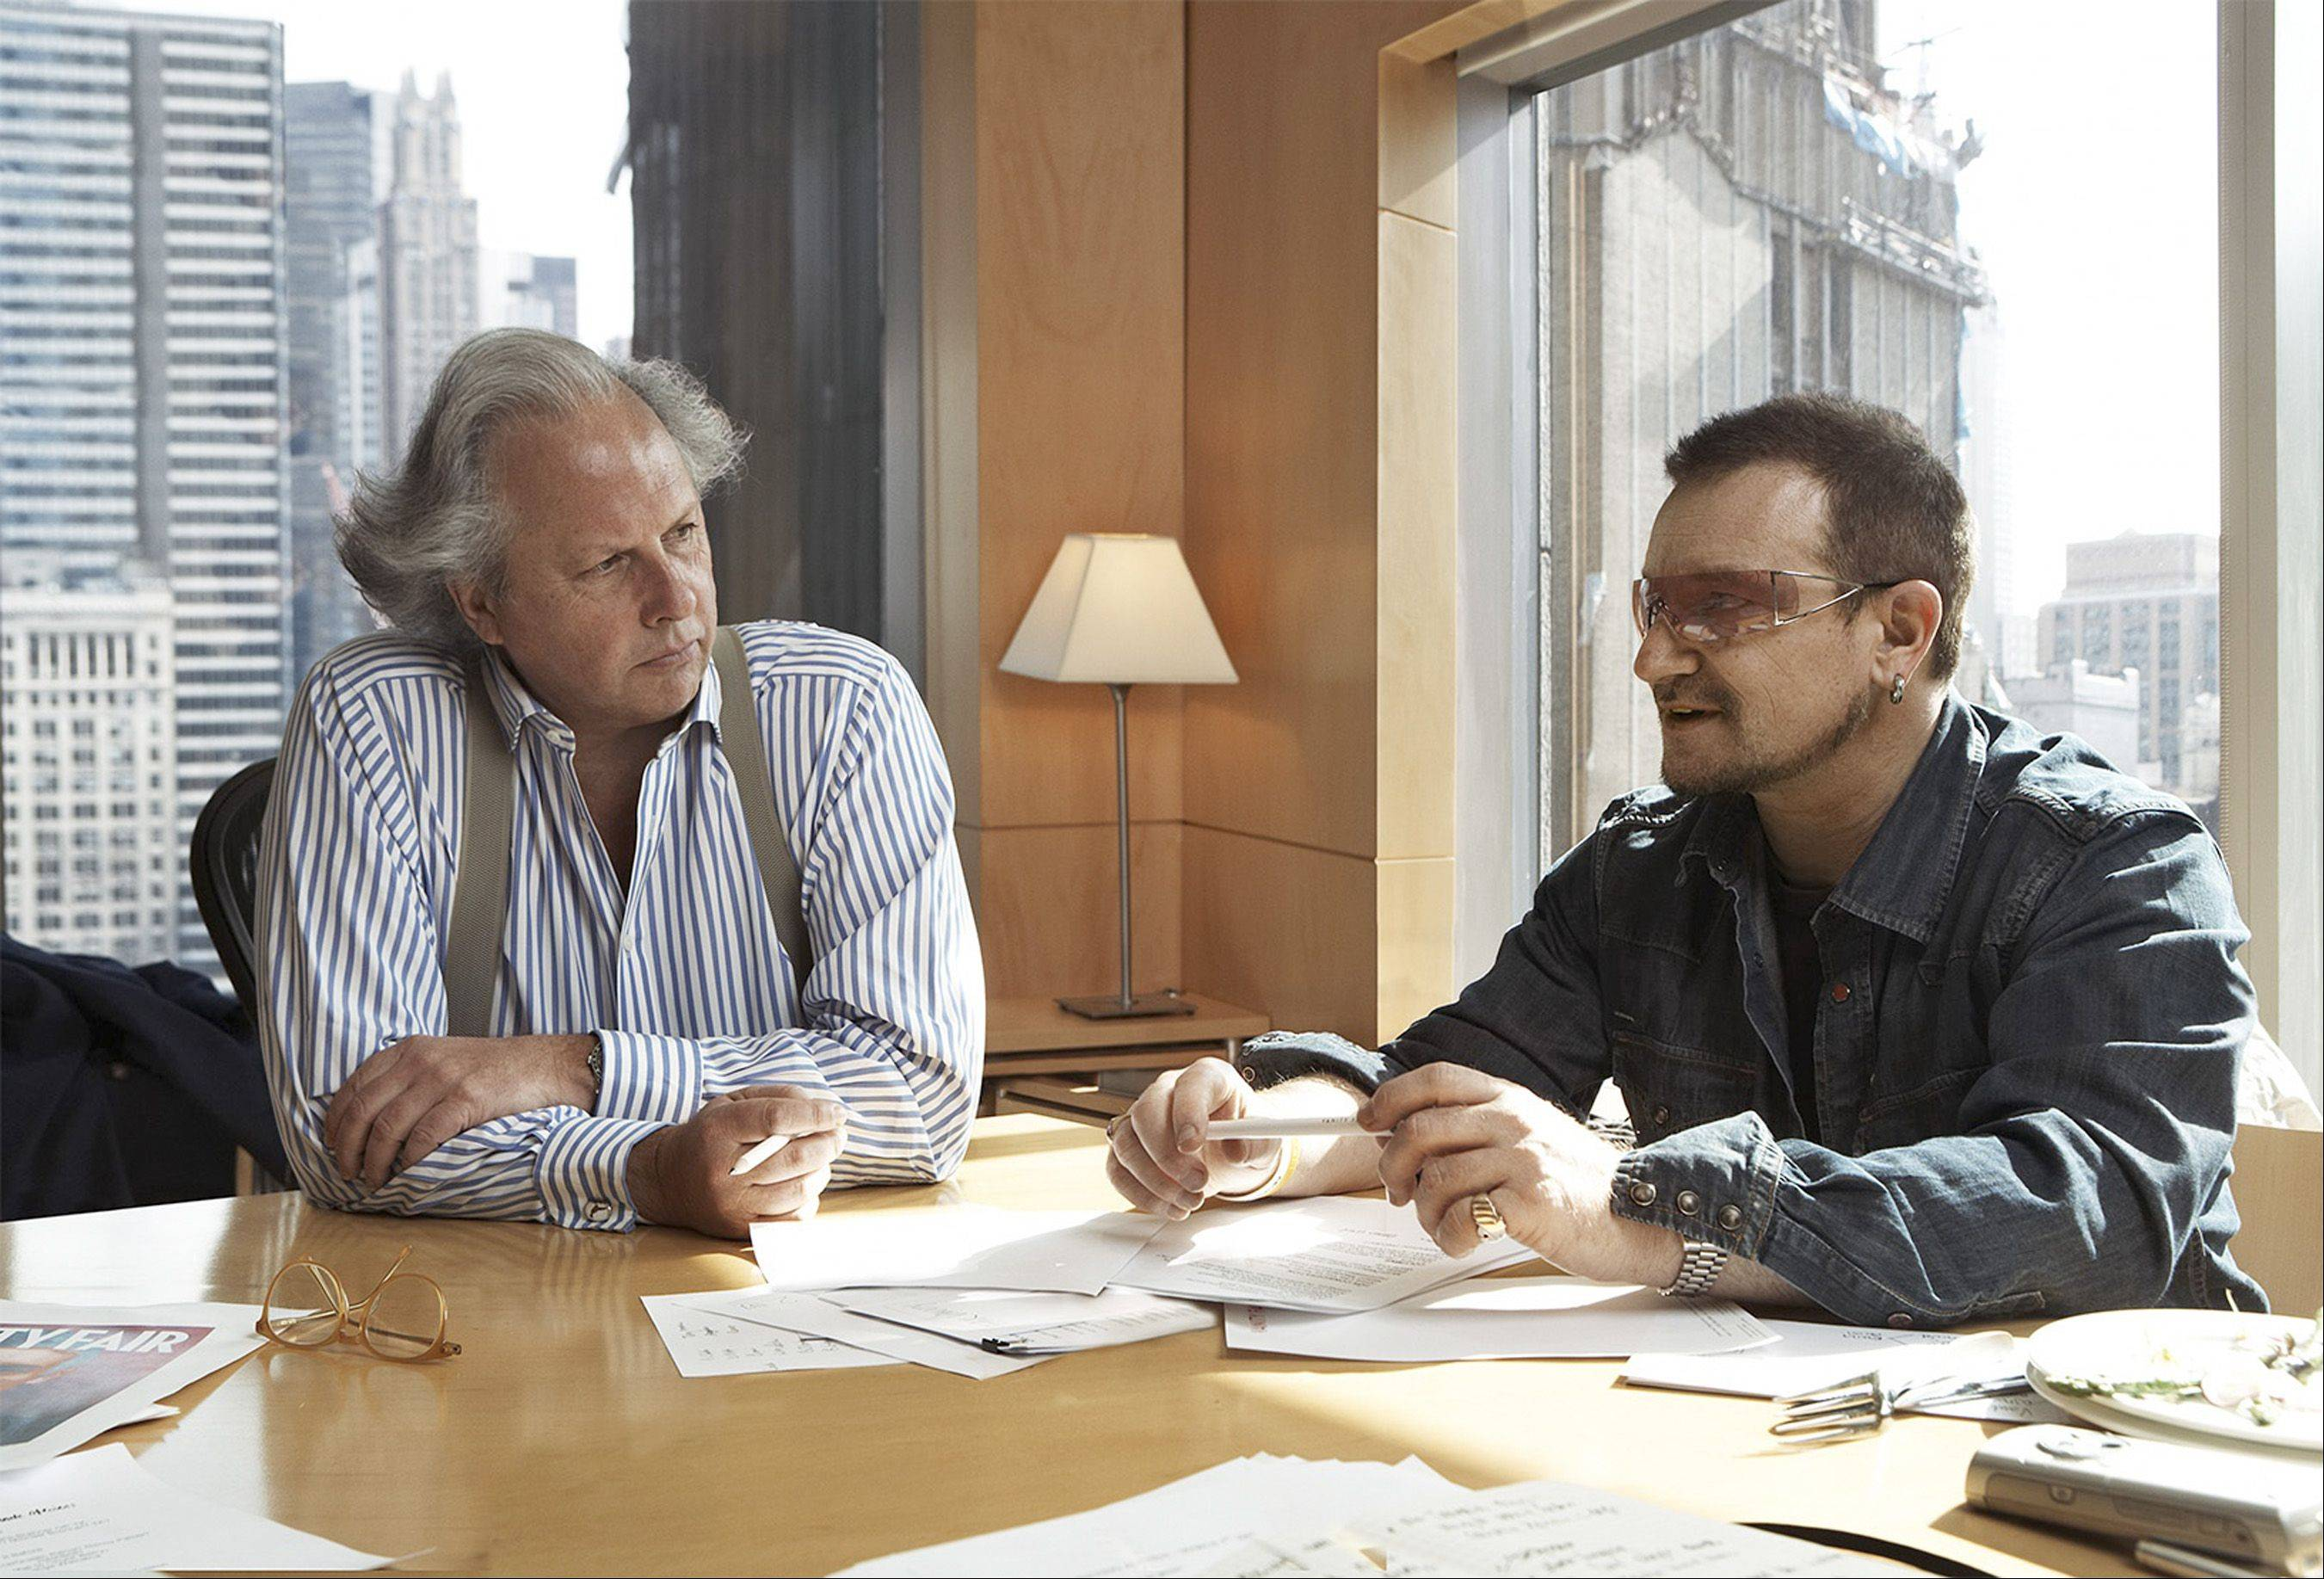 This photo supplied by Vanity Fair shows Vanity Fair Editor Graydon Carter, left, and Rock star Bono discussing the magazine's July African issue which Bono will guest edit, in Carters office on Thursday, March 1, 2007, in New York.